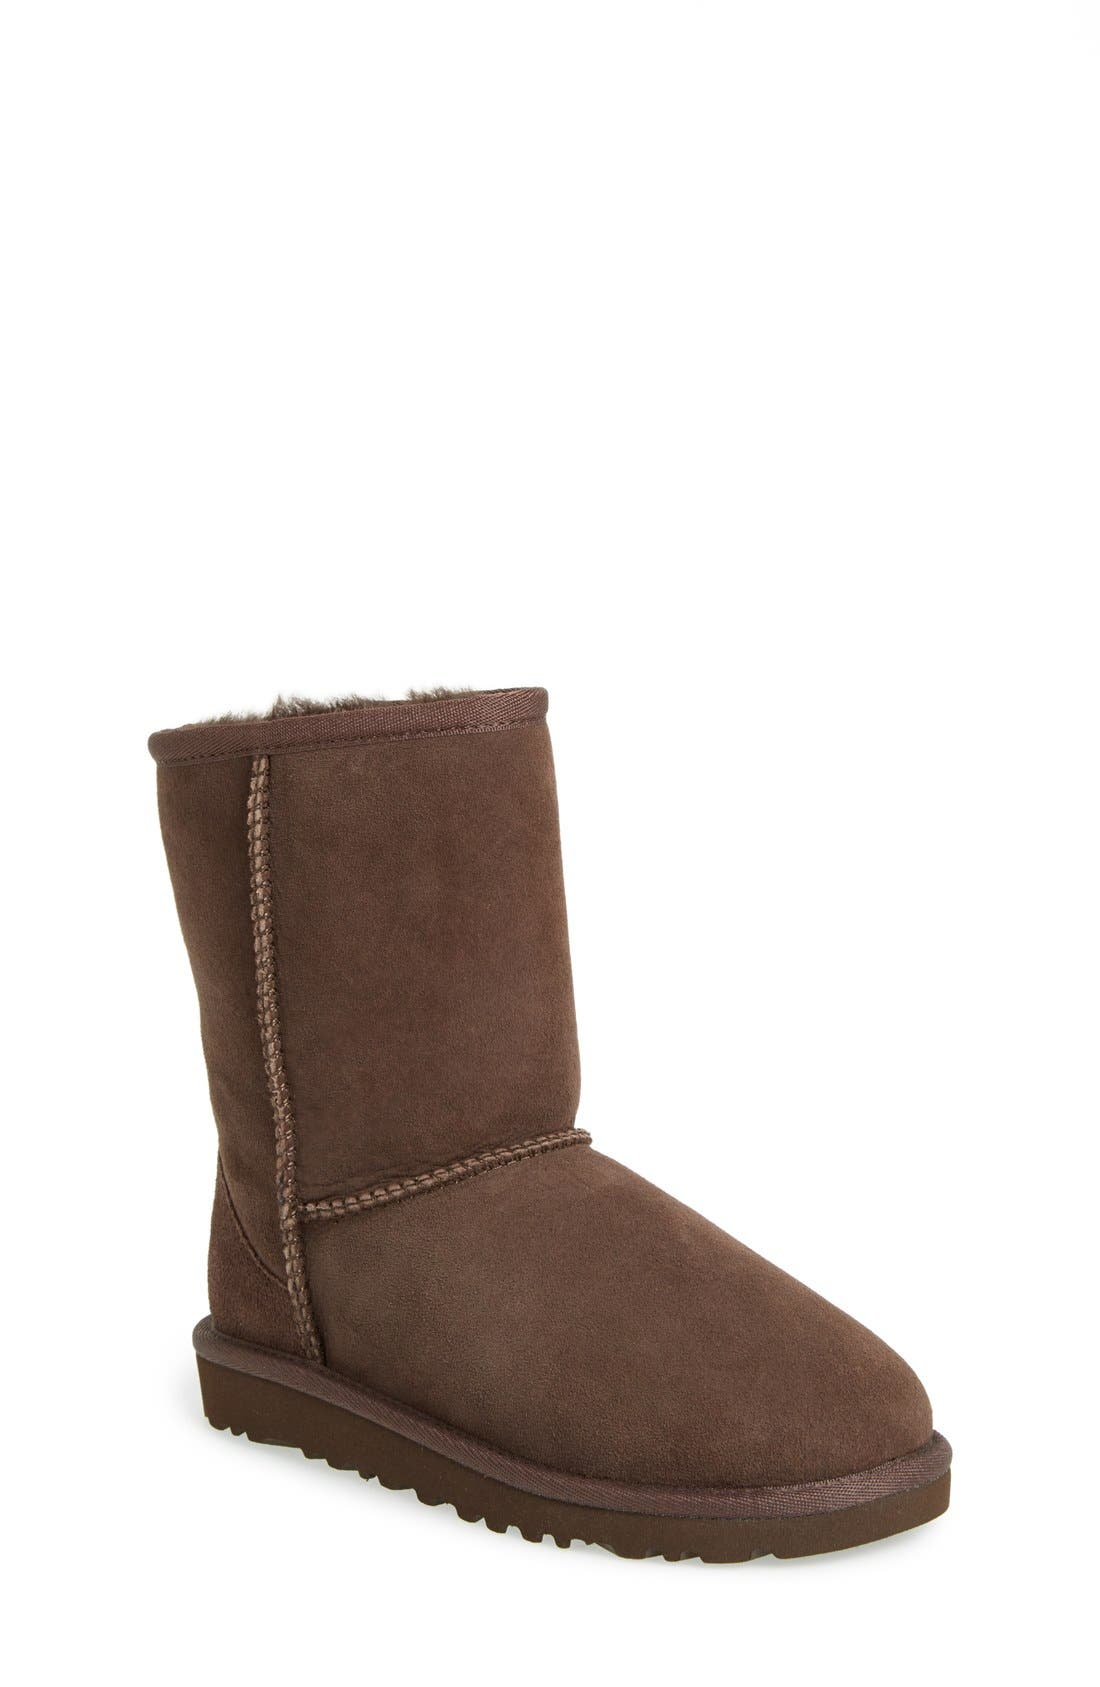 Alternate Image 1 Selected - UGG® Classic Short Boot (Walker, Toddler, Little Kid & Big Kid)